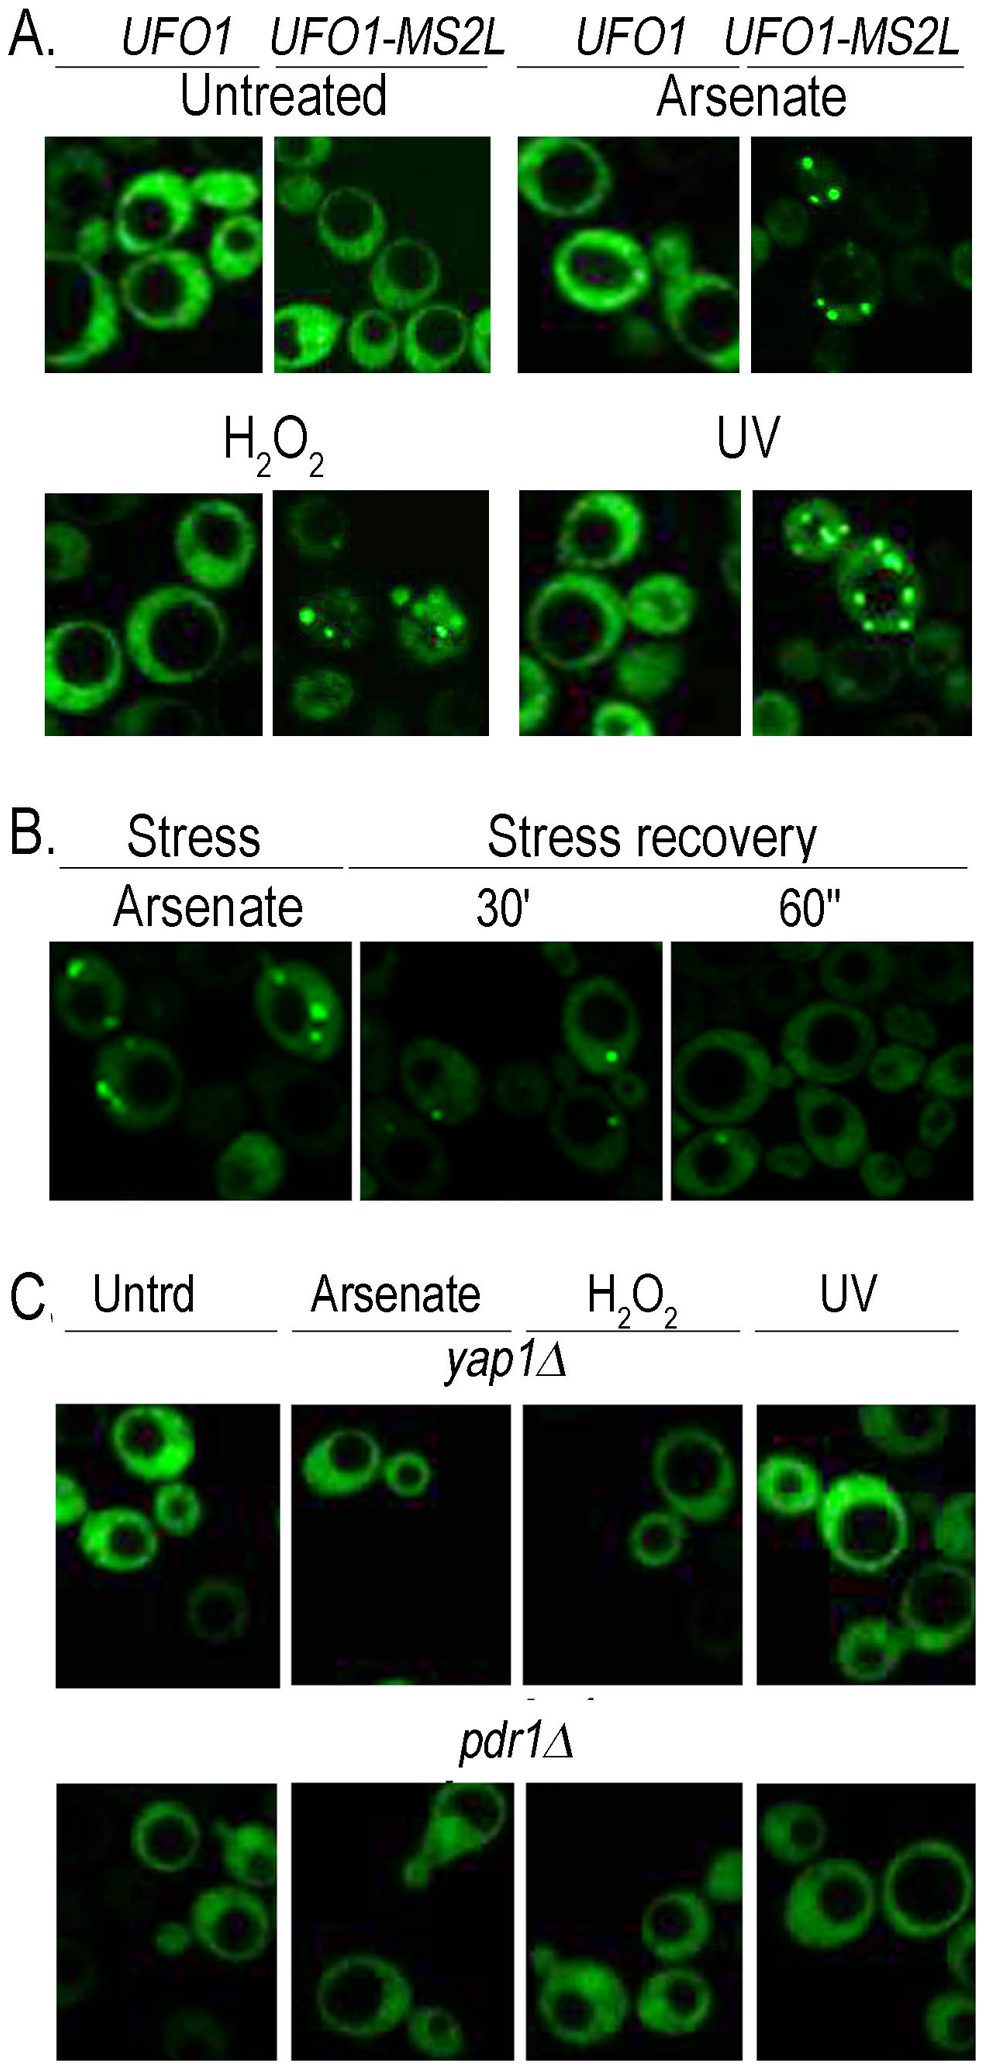 Stress-induced granules appear only in <i>UFO1-MS2L</i> stressed cells.